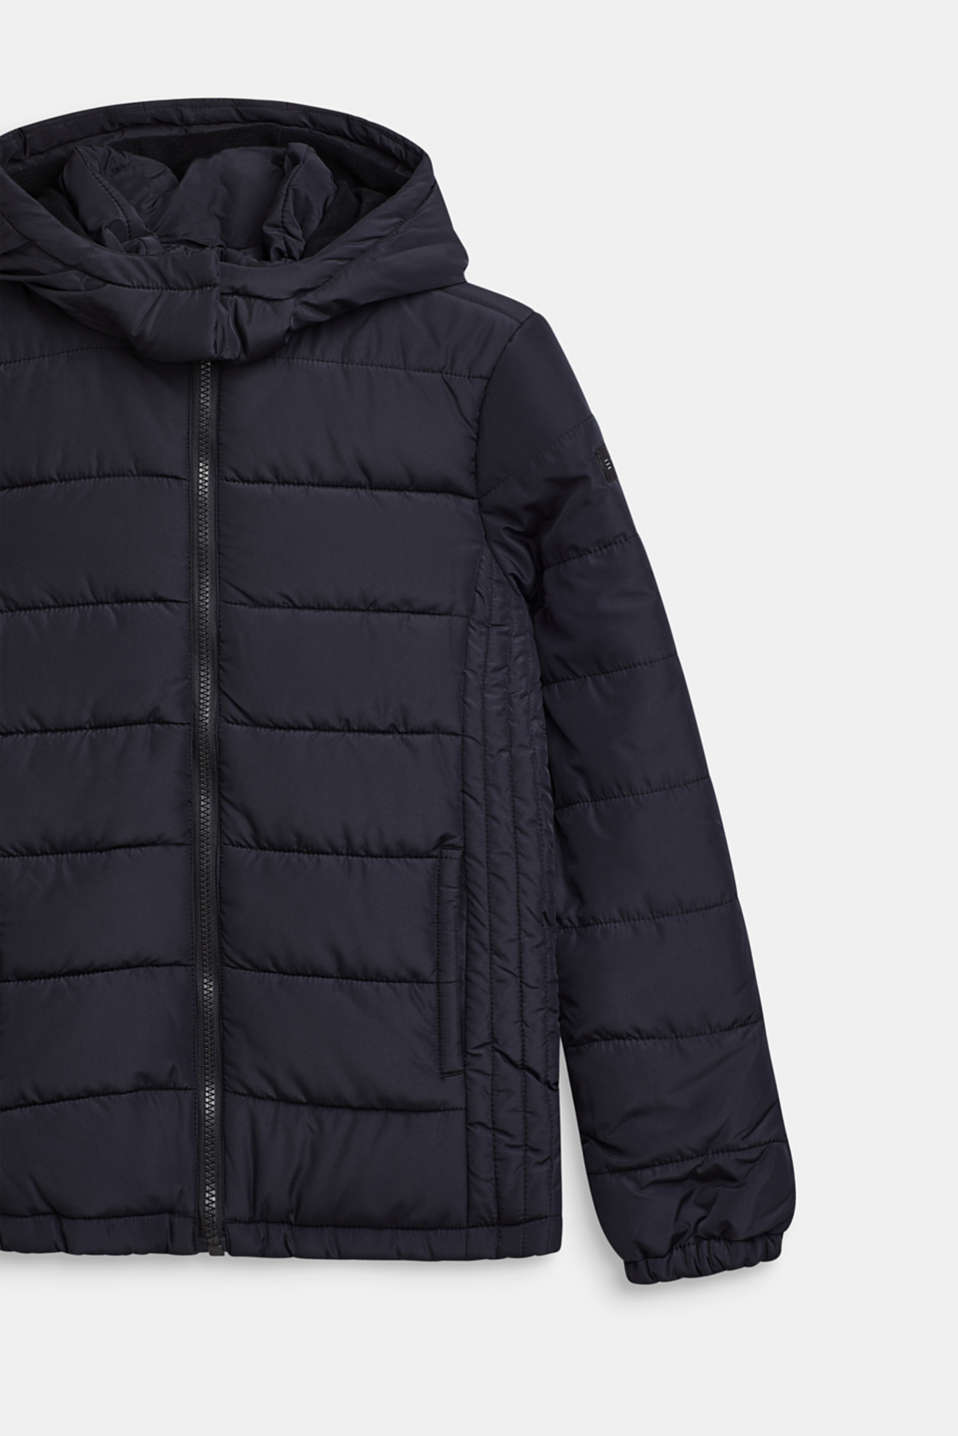 Quilted jacket with a hood and fleece lining, LCBLACK, detail image number 2